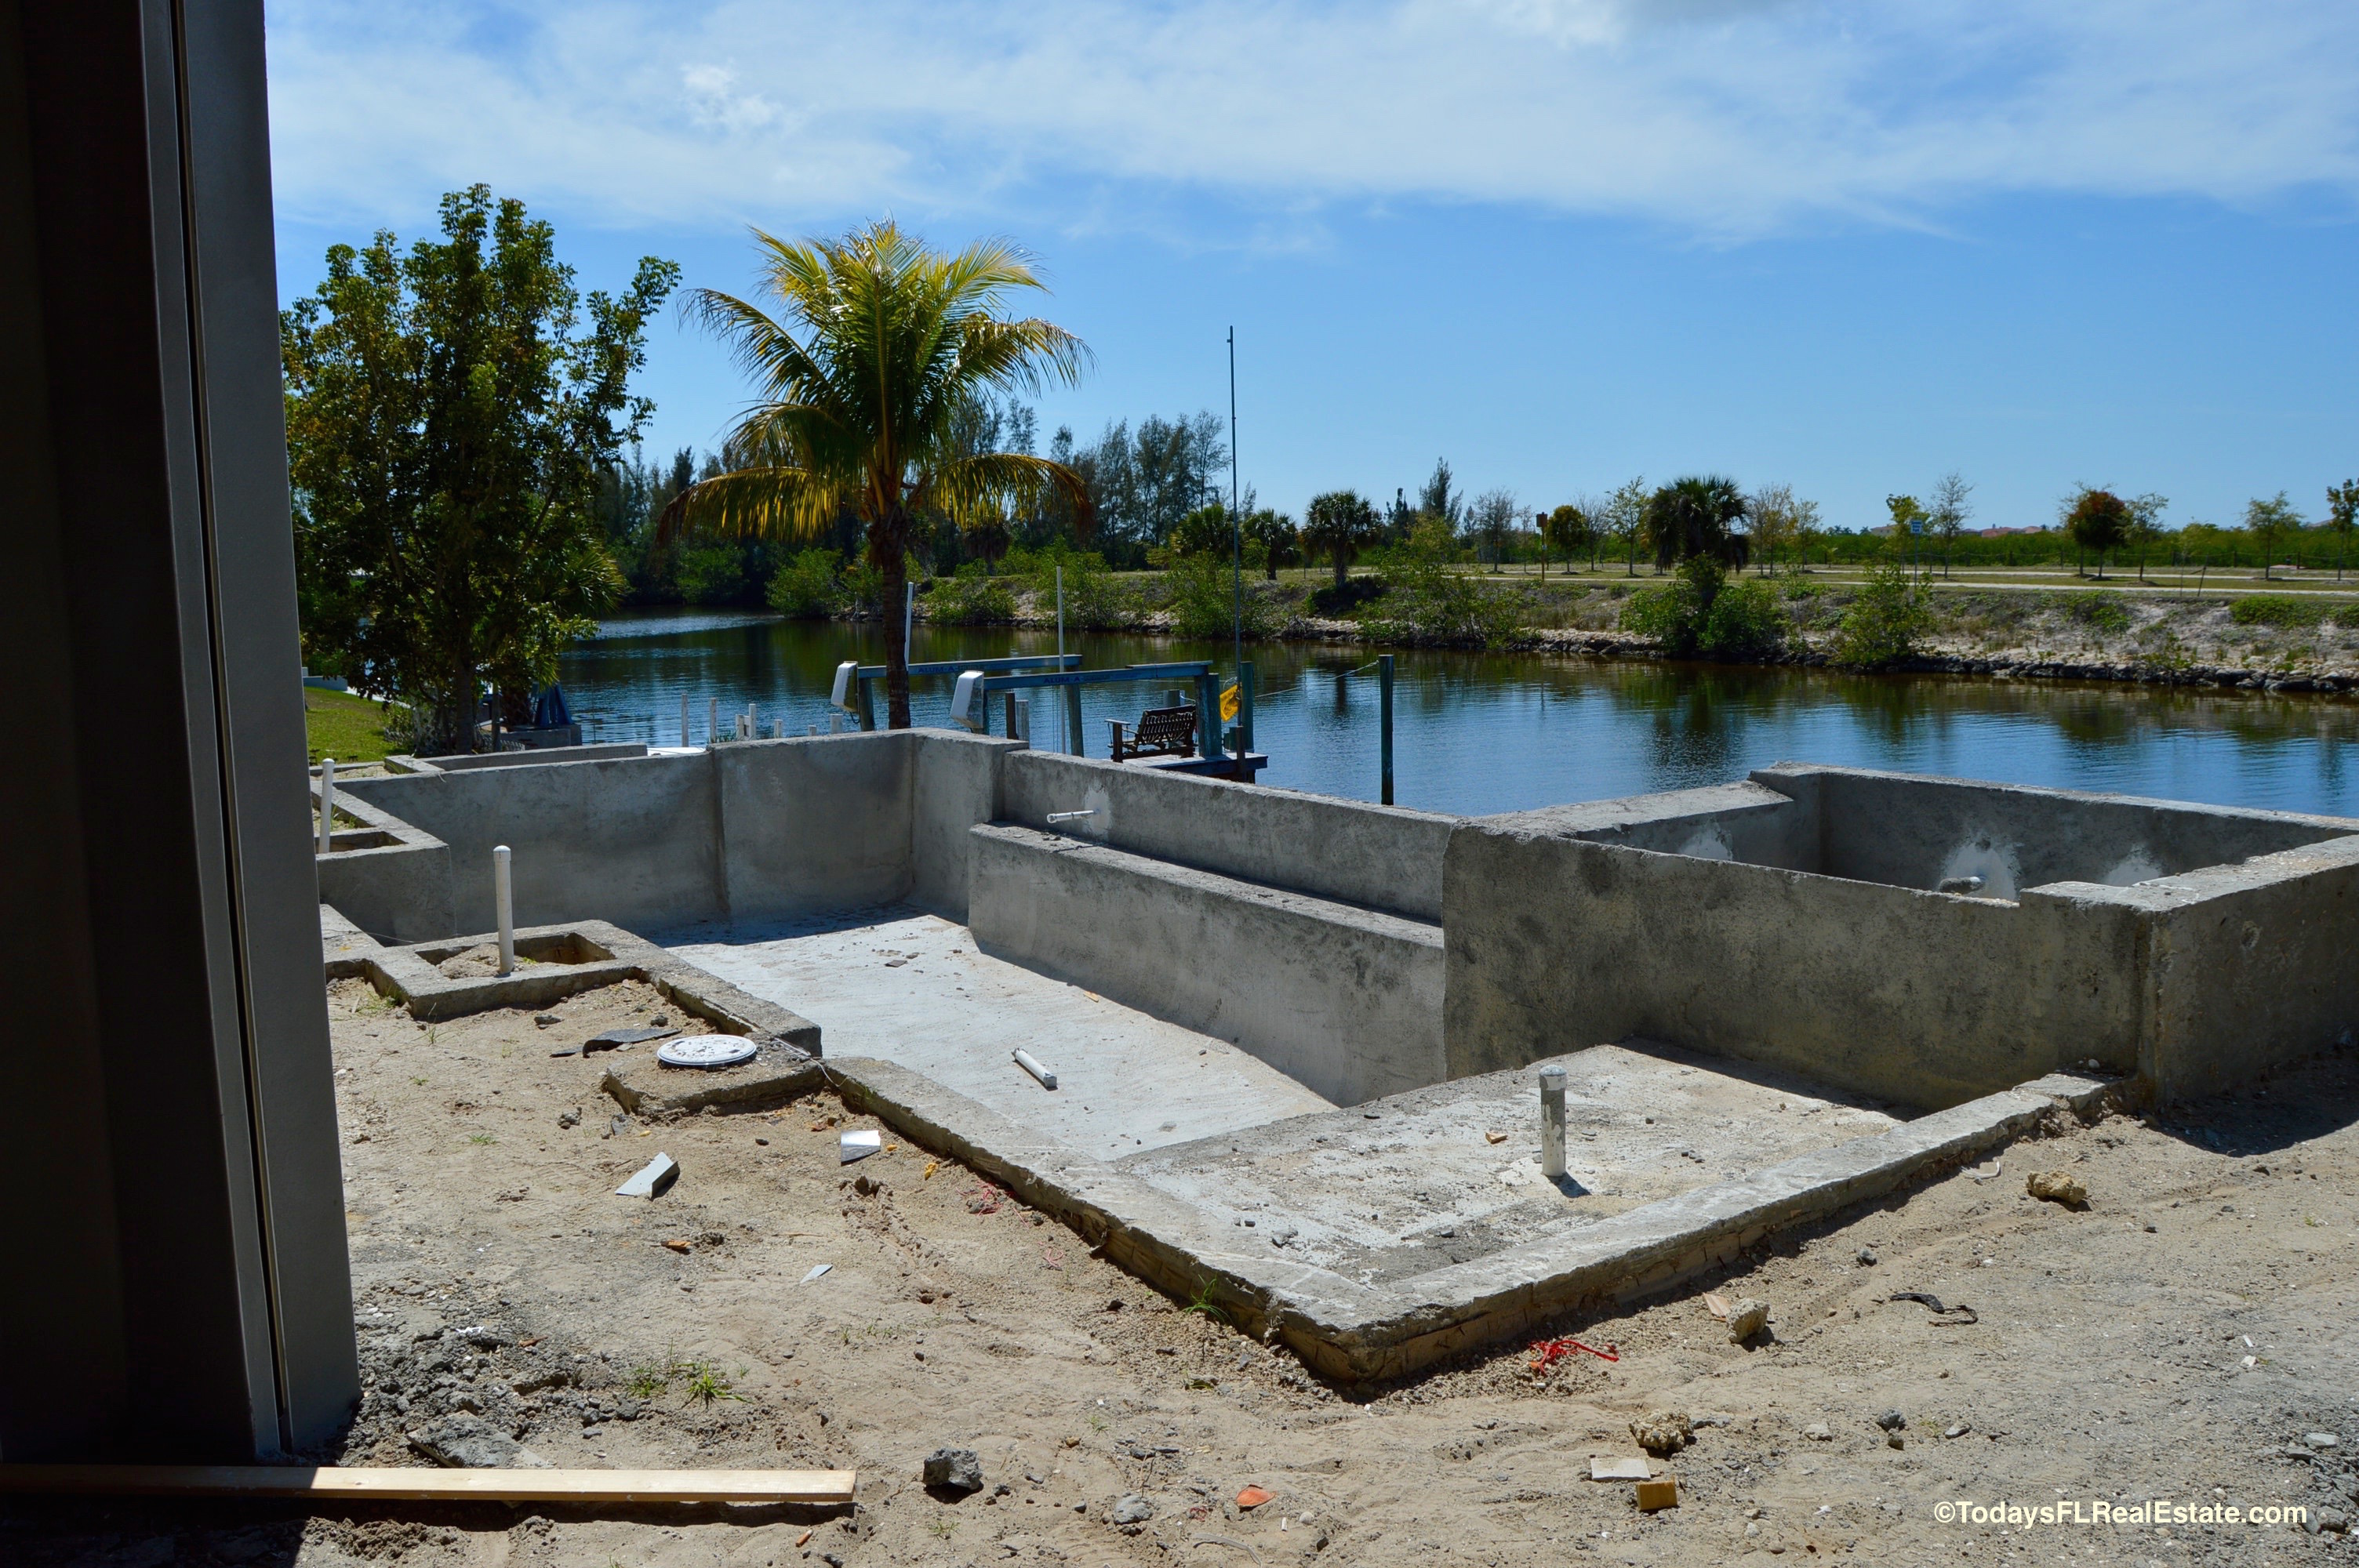 Swimming pool homes for sale Cape Coral, Cape Coral Swimming Pools, New Waterfront Homes Cape Coral, Cape Coral New Pool,